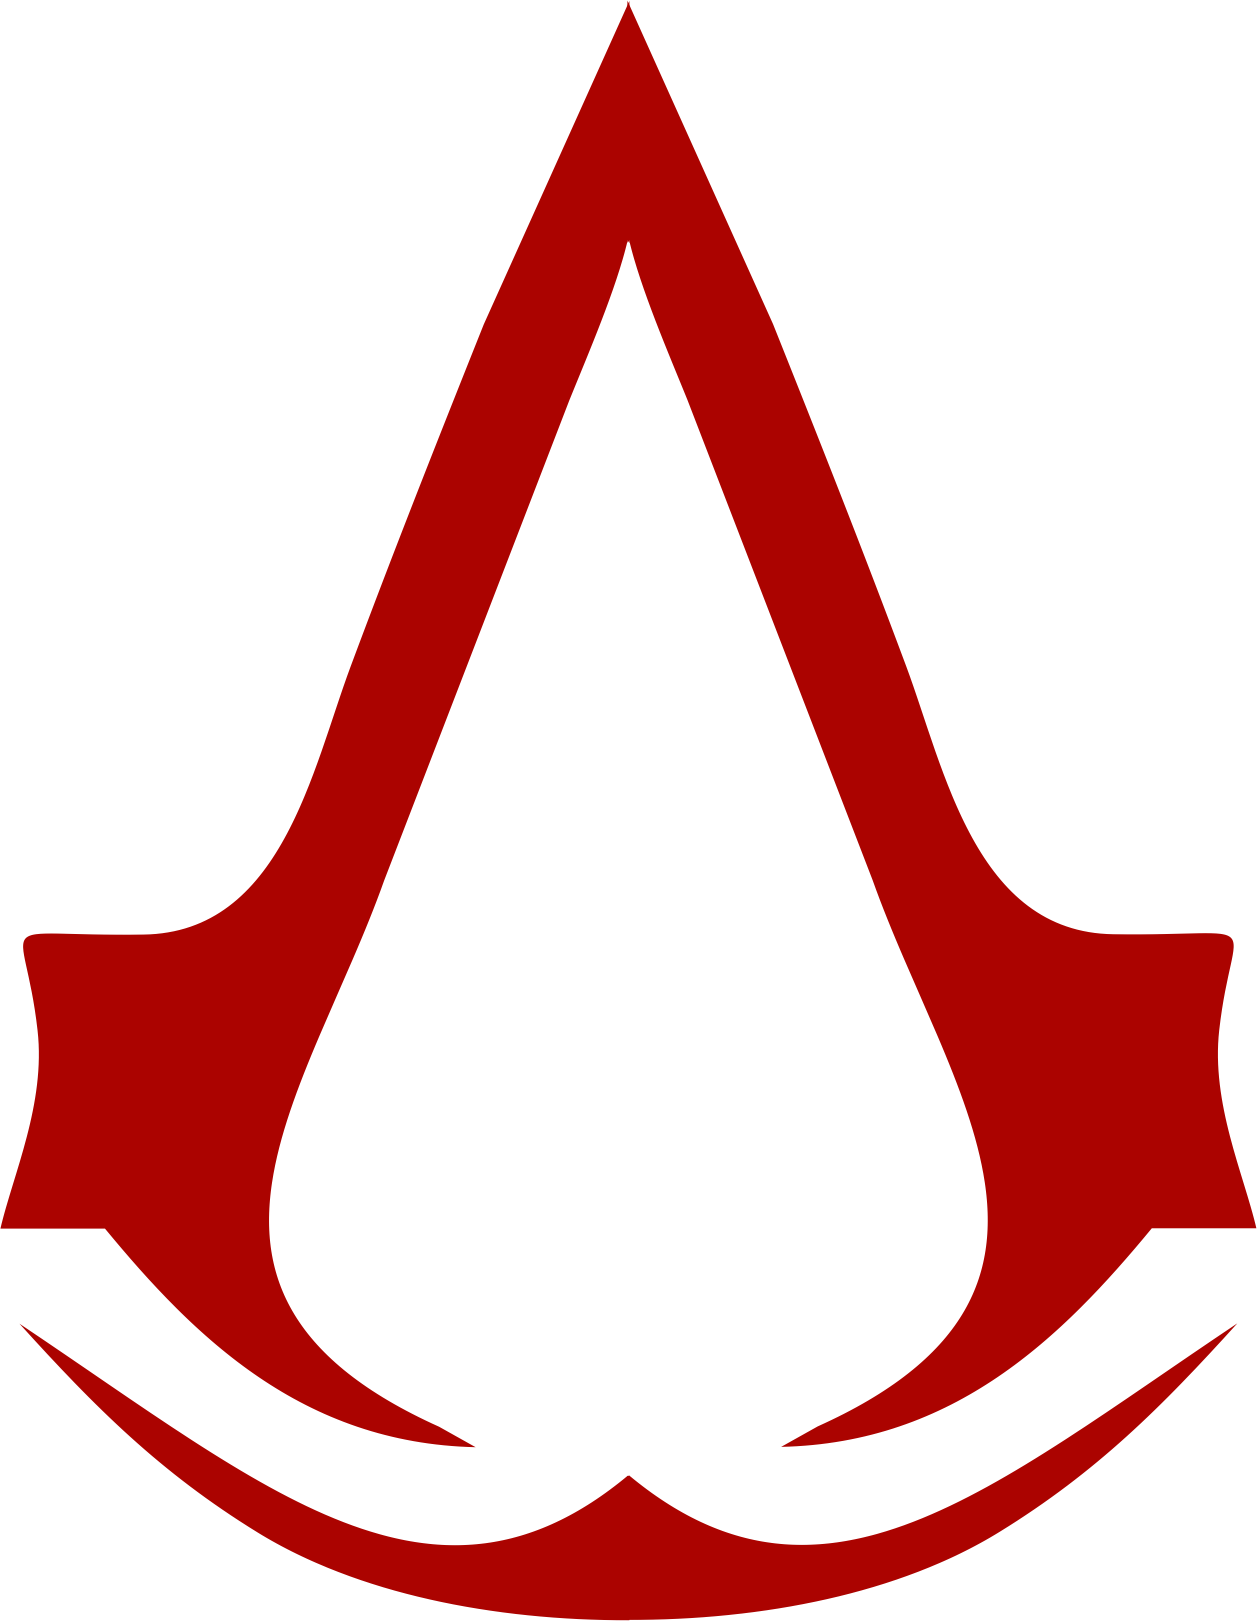 assassins creed logo png #4874